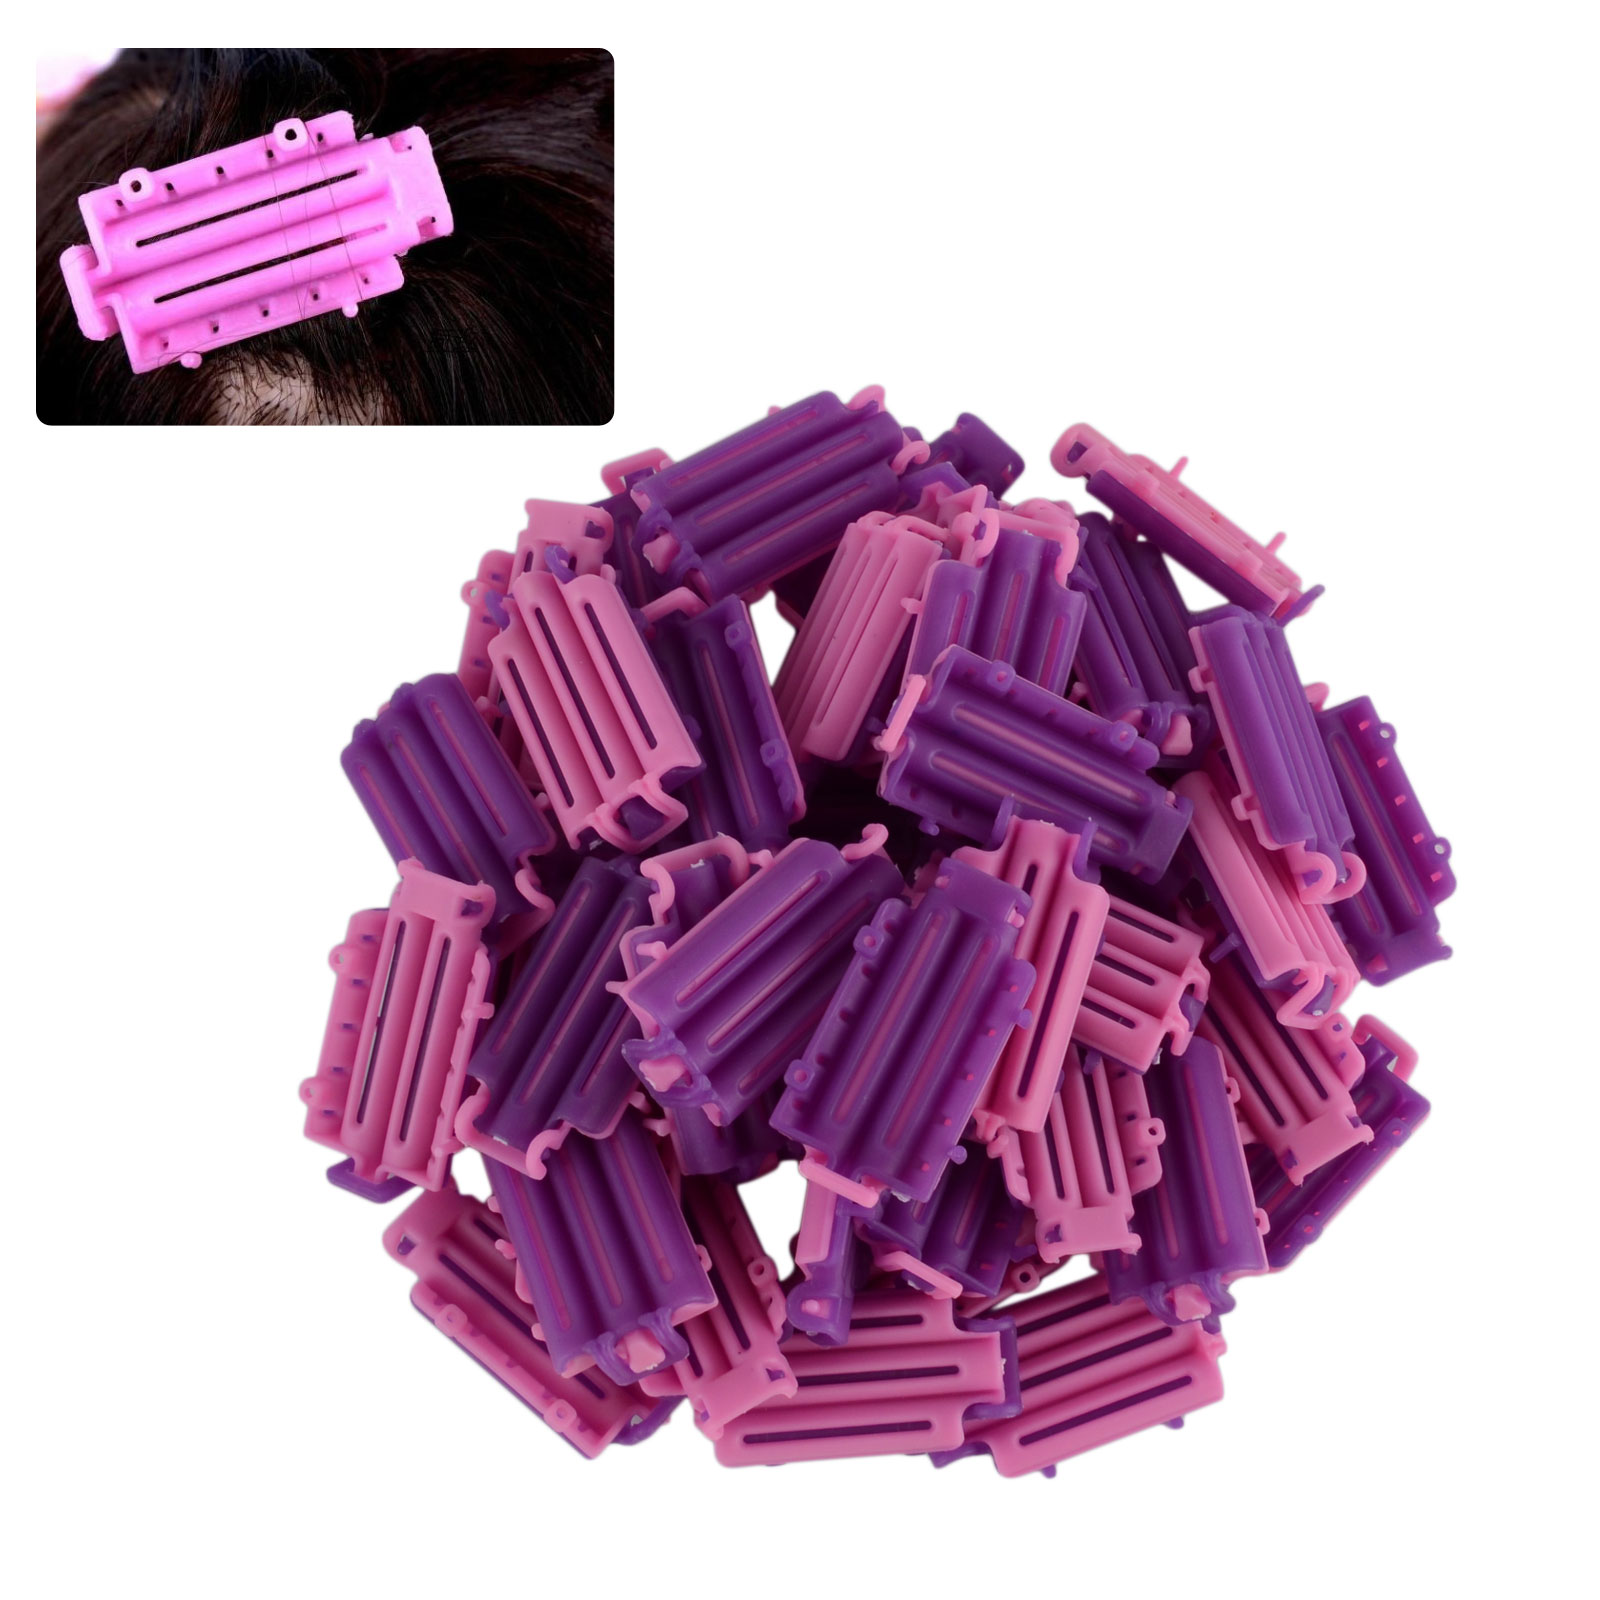 45pcs Women Beauty DIY Wave Perm Rod Corn Hair Clip Curler High Quality Maker Hairdressing Styling Tool For Salon